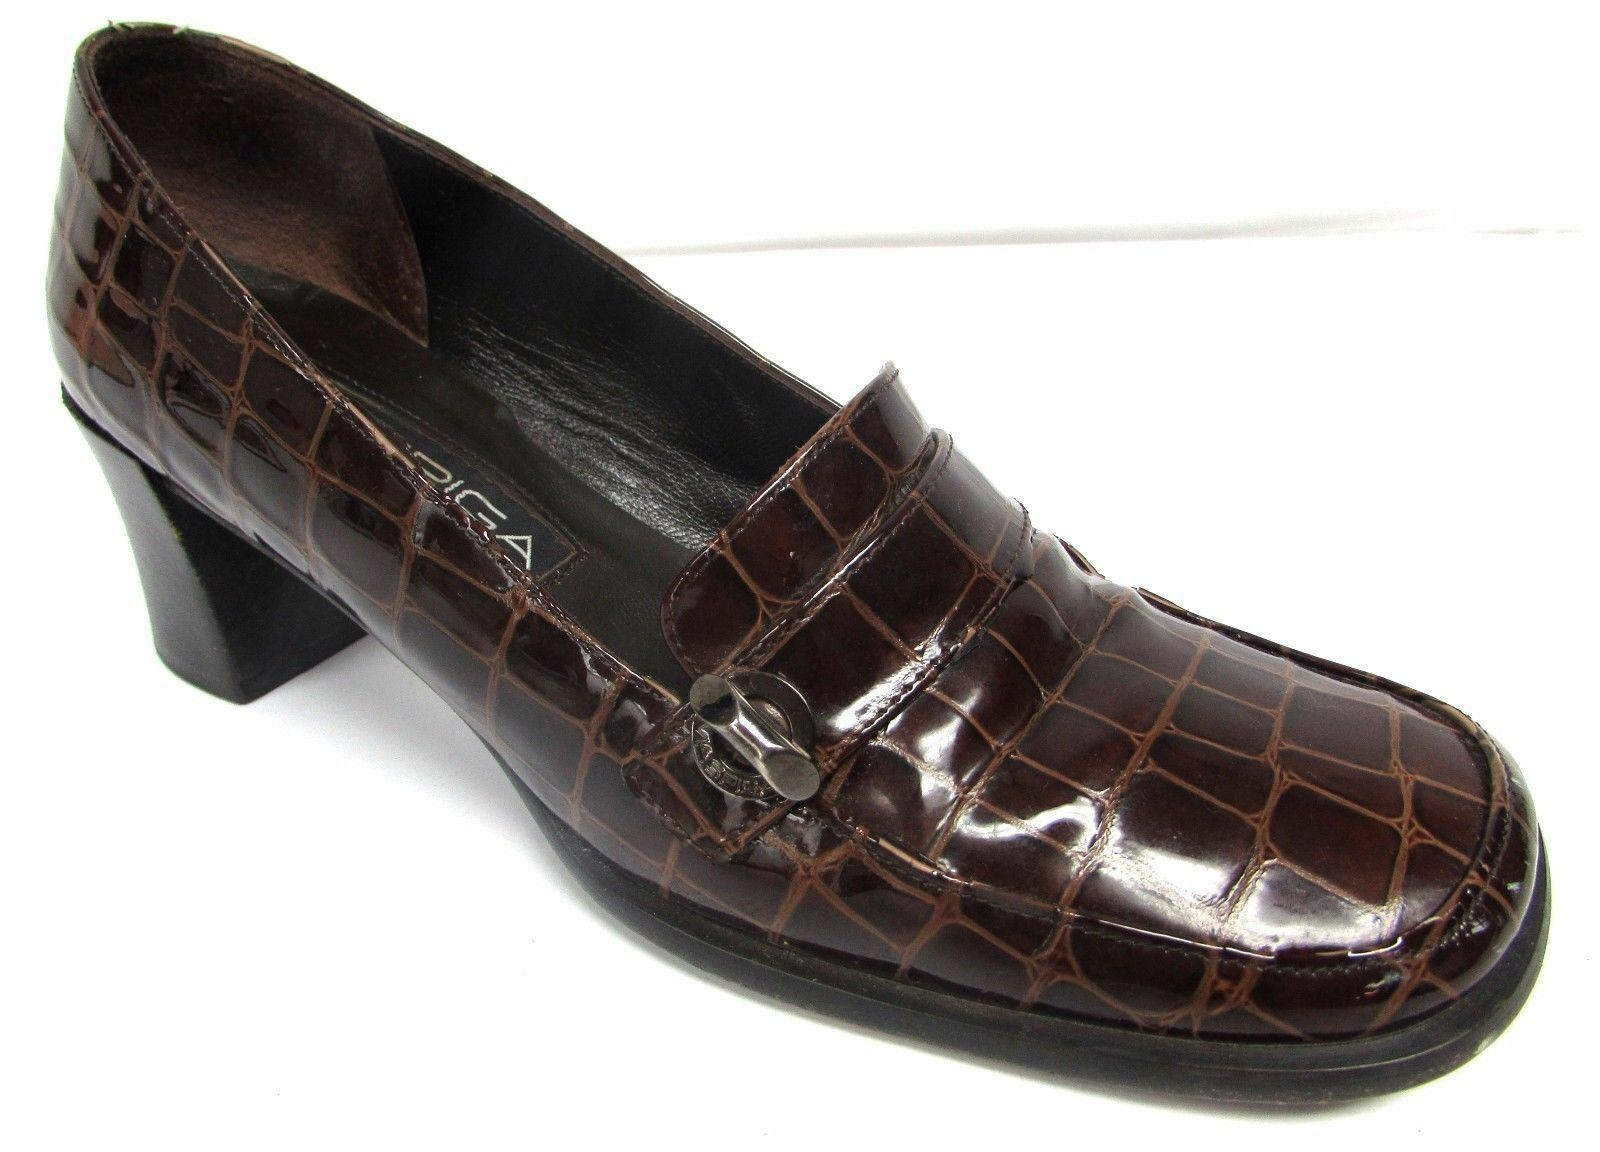 Via Spiga women's 7 M brown leather clogs loafers shoes medium heel